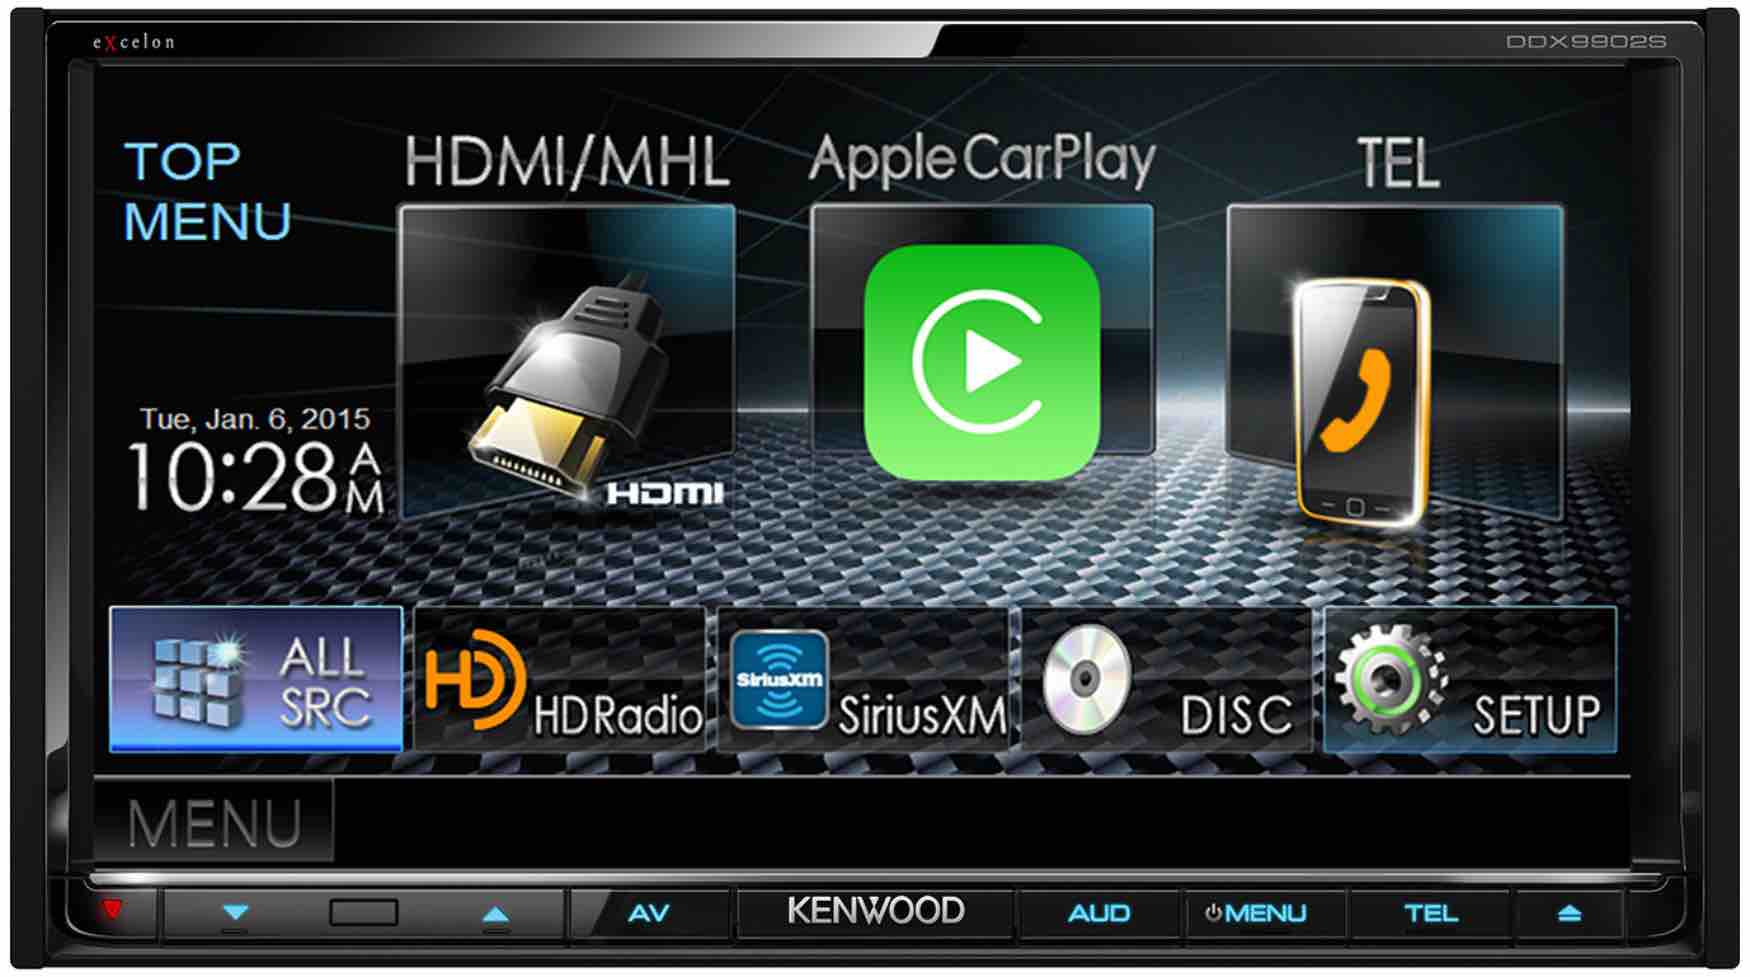 kenwood presenta un 39 autoradio aftermarket compatibile con carplay e android auto iphone italia. Black Bedroom Furniture Sets. Home Design Ideas